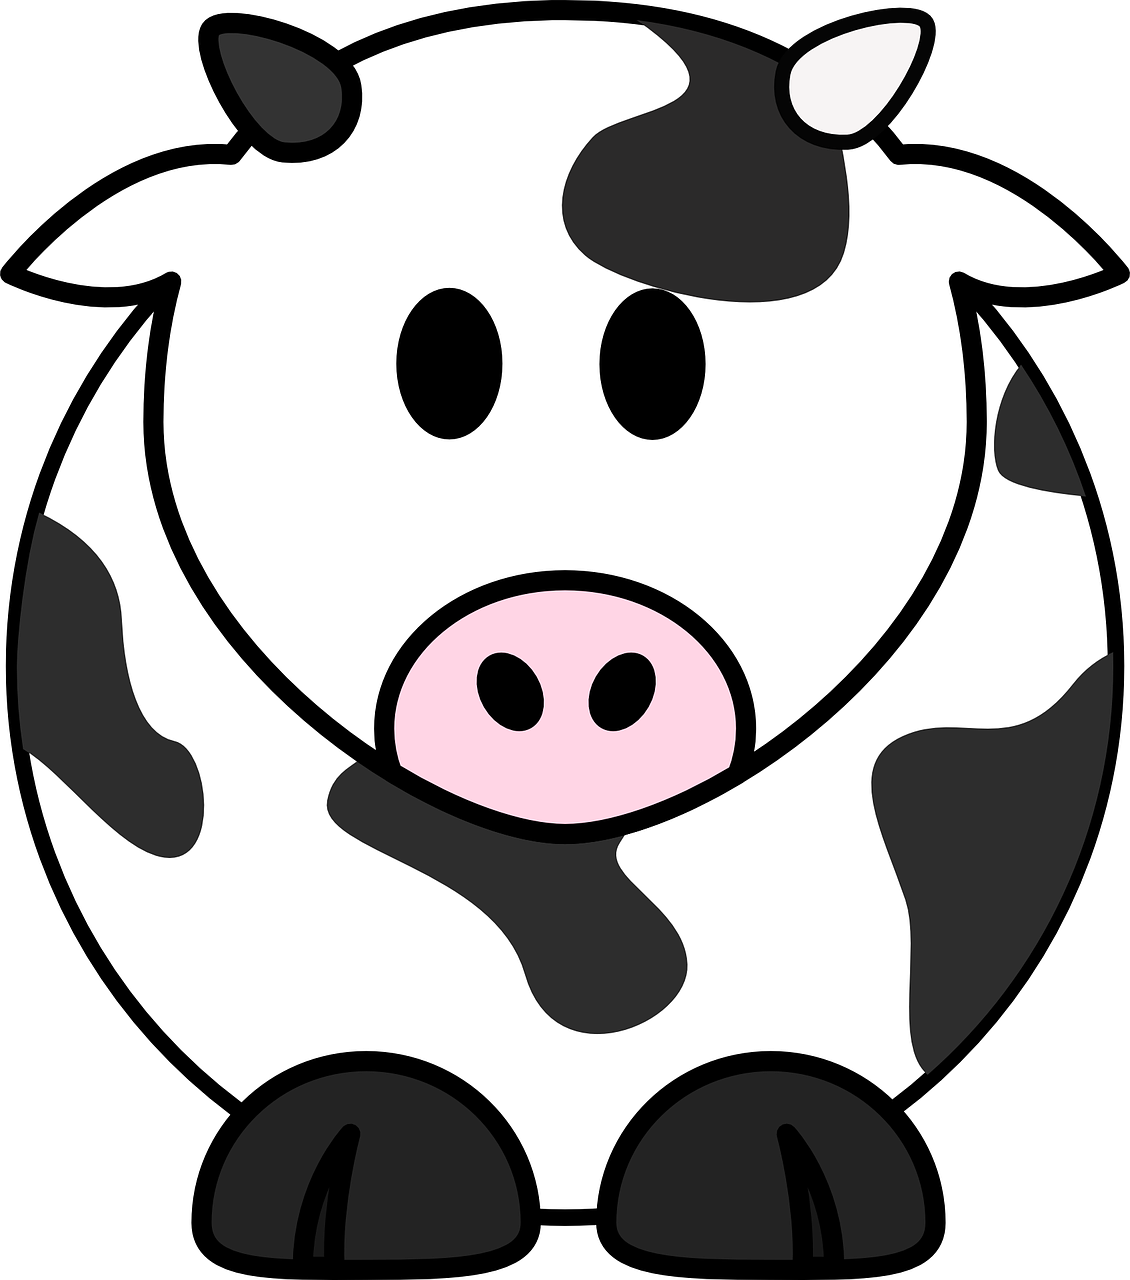 Free Image On Pixabay Milk Cow Cow Cattle Black White Cow Illustration Cow Drawing Cow Clipart